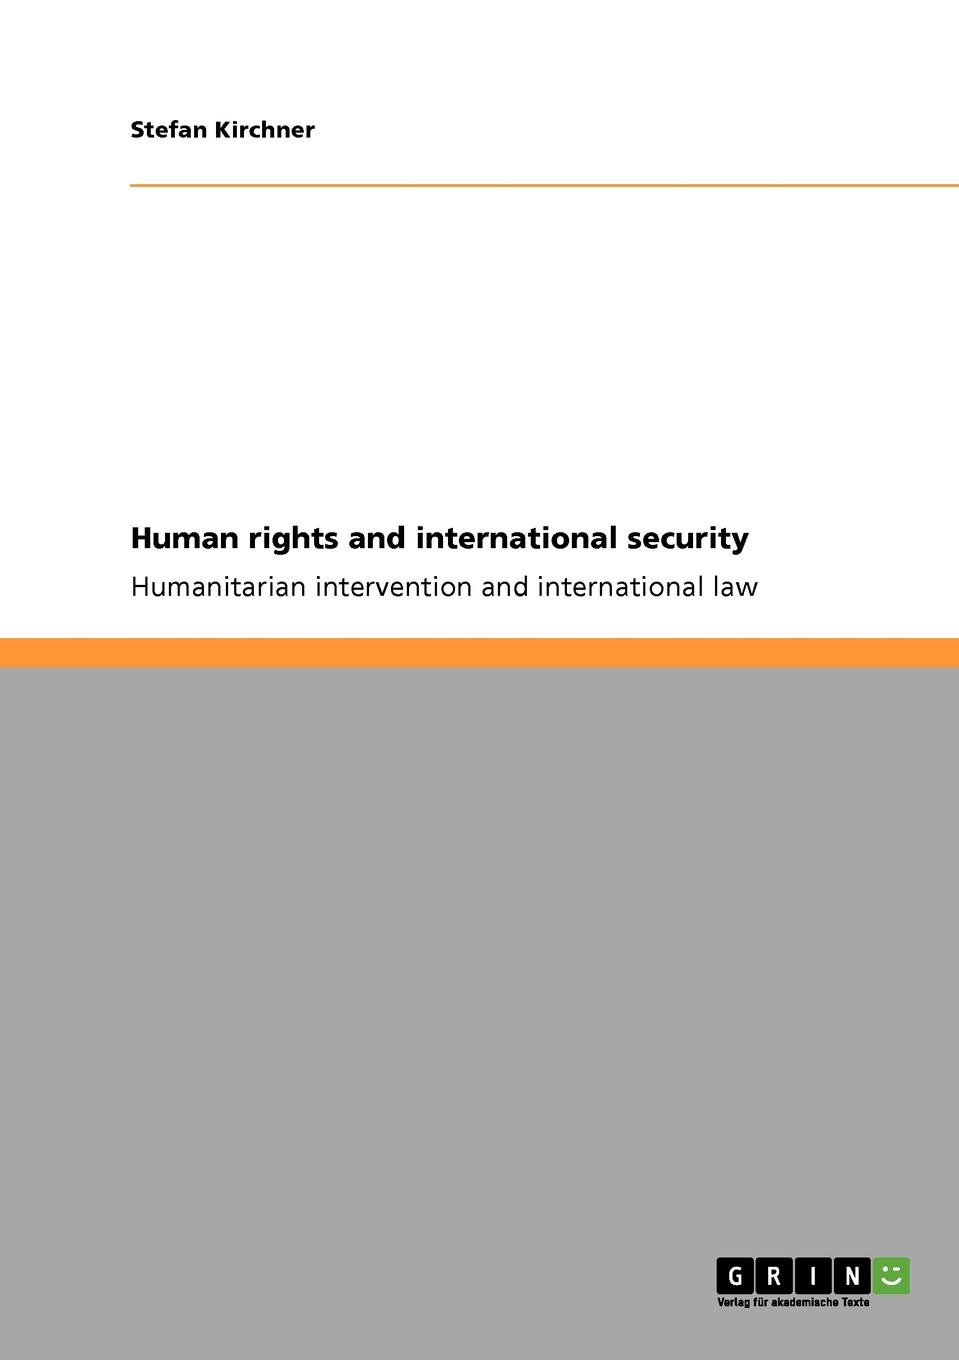 цены на Stefan Kirchner Human rights and international security  в интернет-магазинах